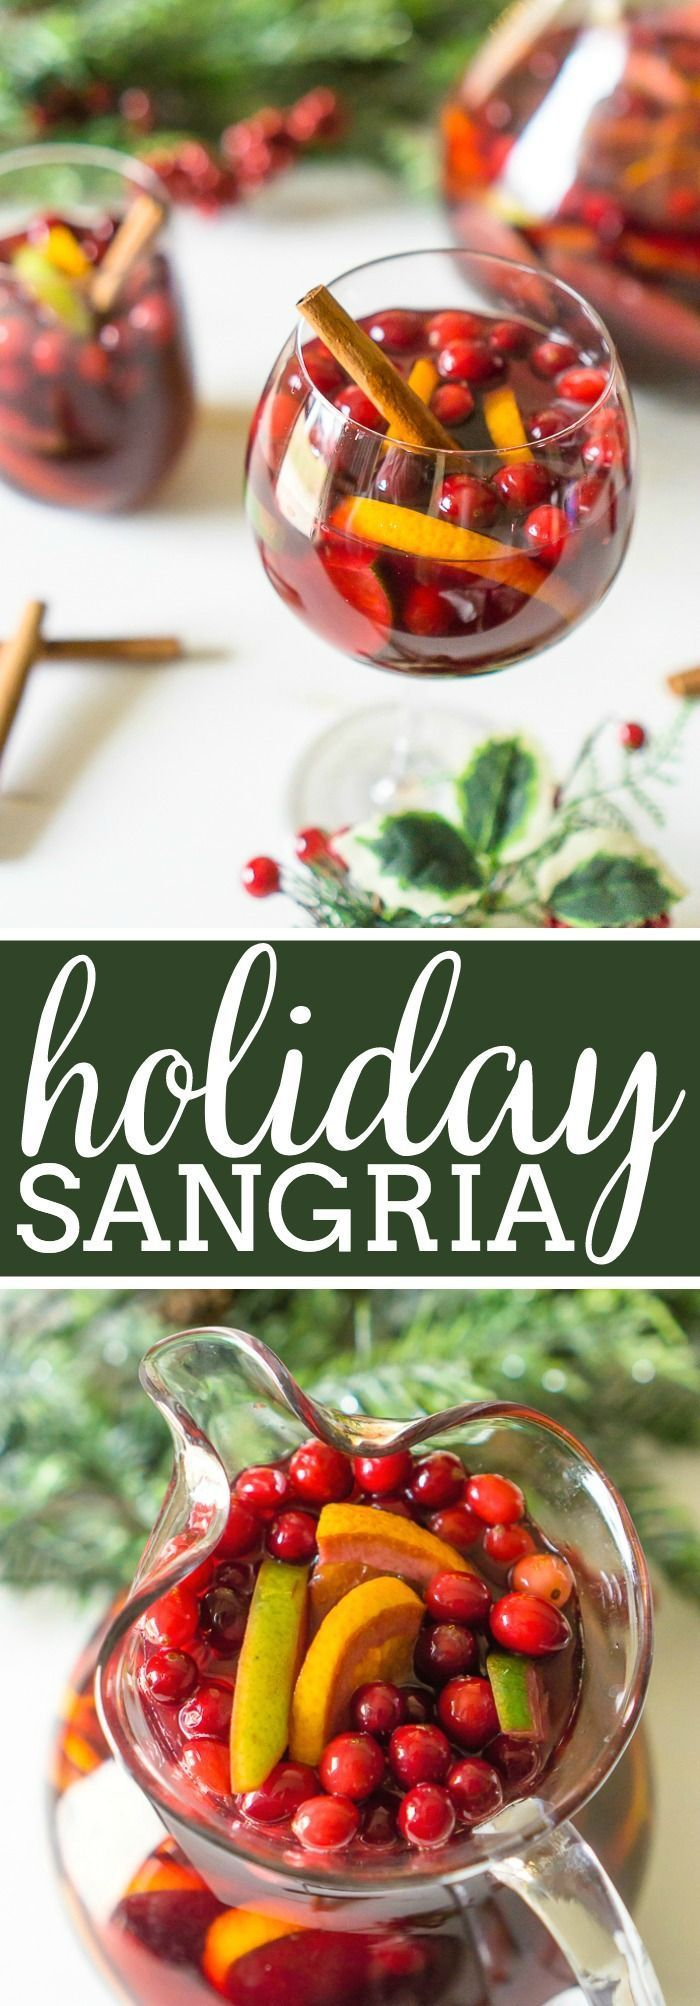 Don't forget to add a special holiday cocktail recipe to your Christmas menu this year, like this Citrus Cranberry Holiday Sangria! Filled with cranberries, citrus, pears, a subtle hint of cinnamon, and sweet red wine, you'll love every sip of this red sangria recipe!| The Love Nerds #winecocktail #christmascocktail #cranberrycocktail via @lovenerdmaggie